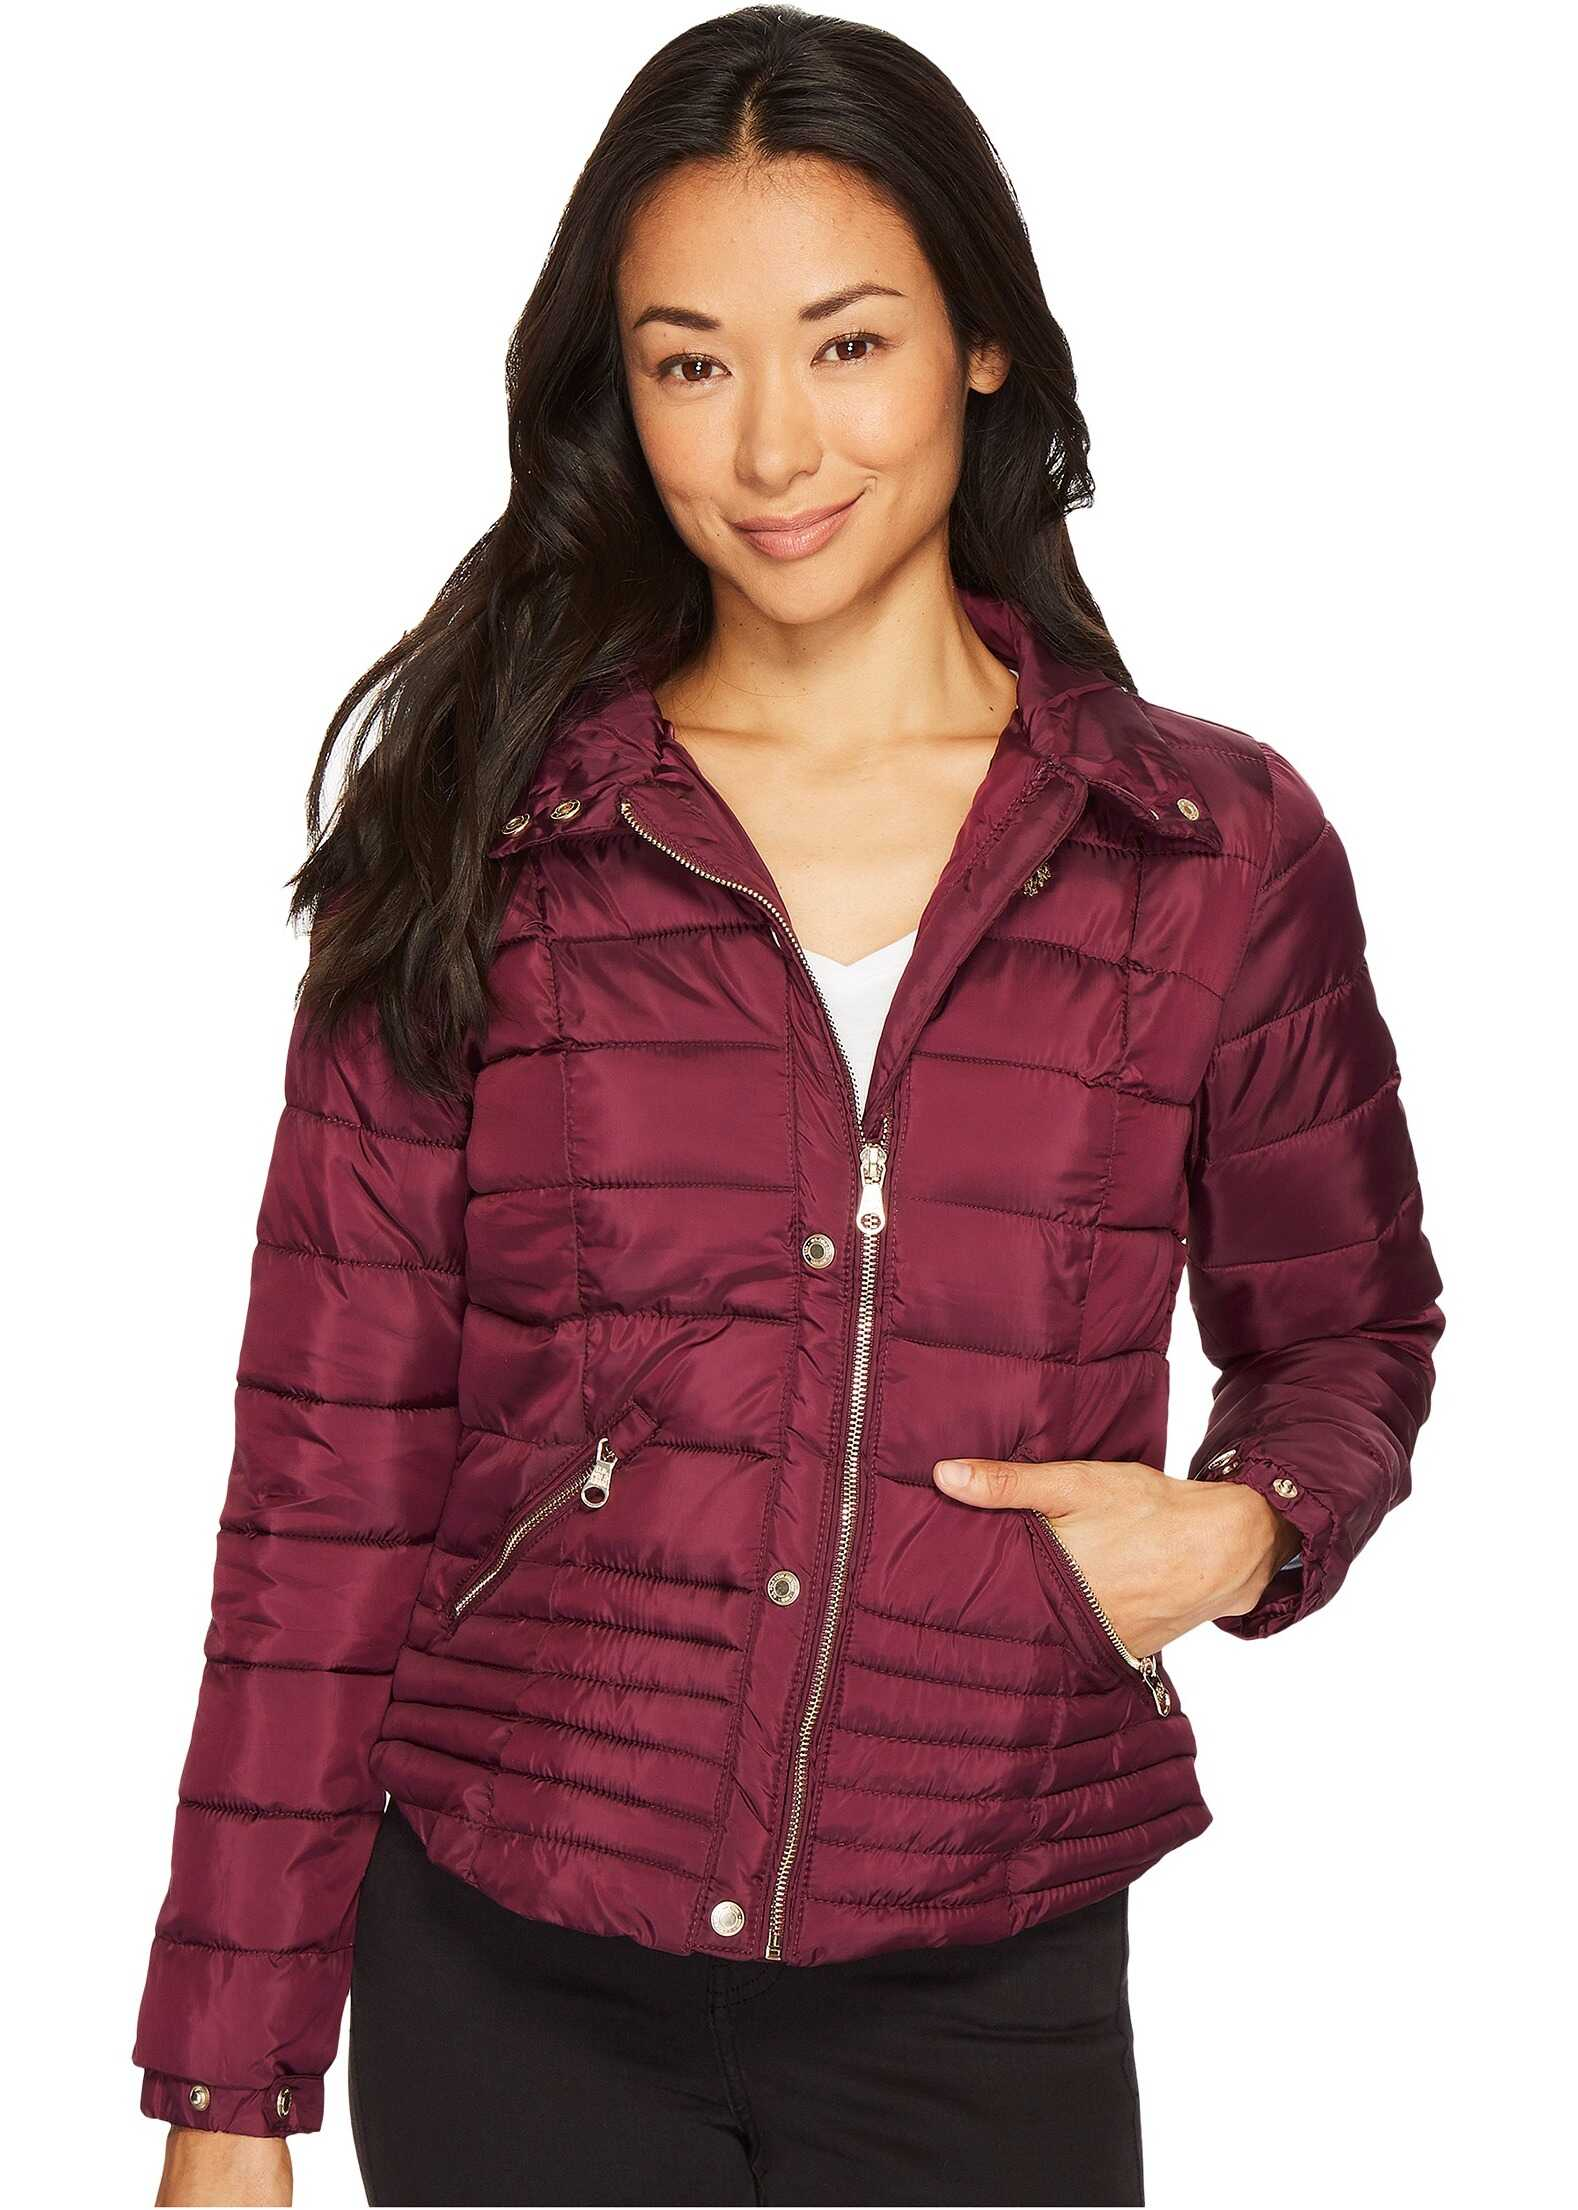 U.S. POLO ASSN. Quilted Moto Puffer Jacket Berry Park